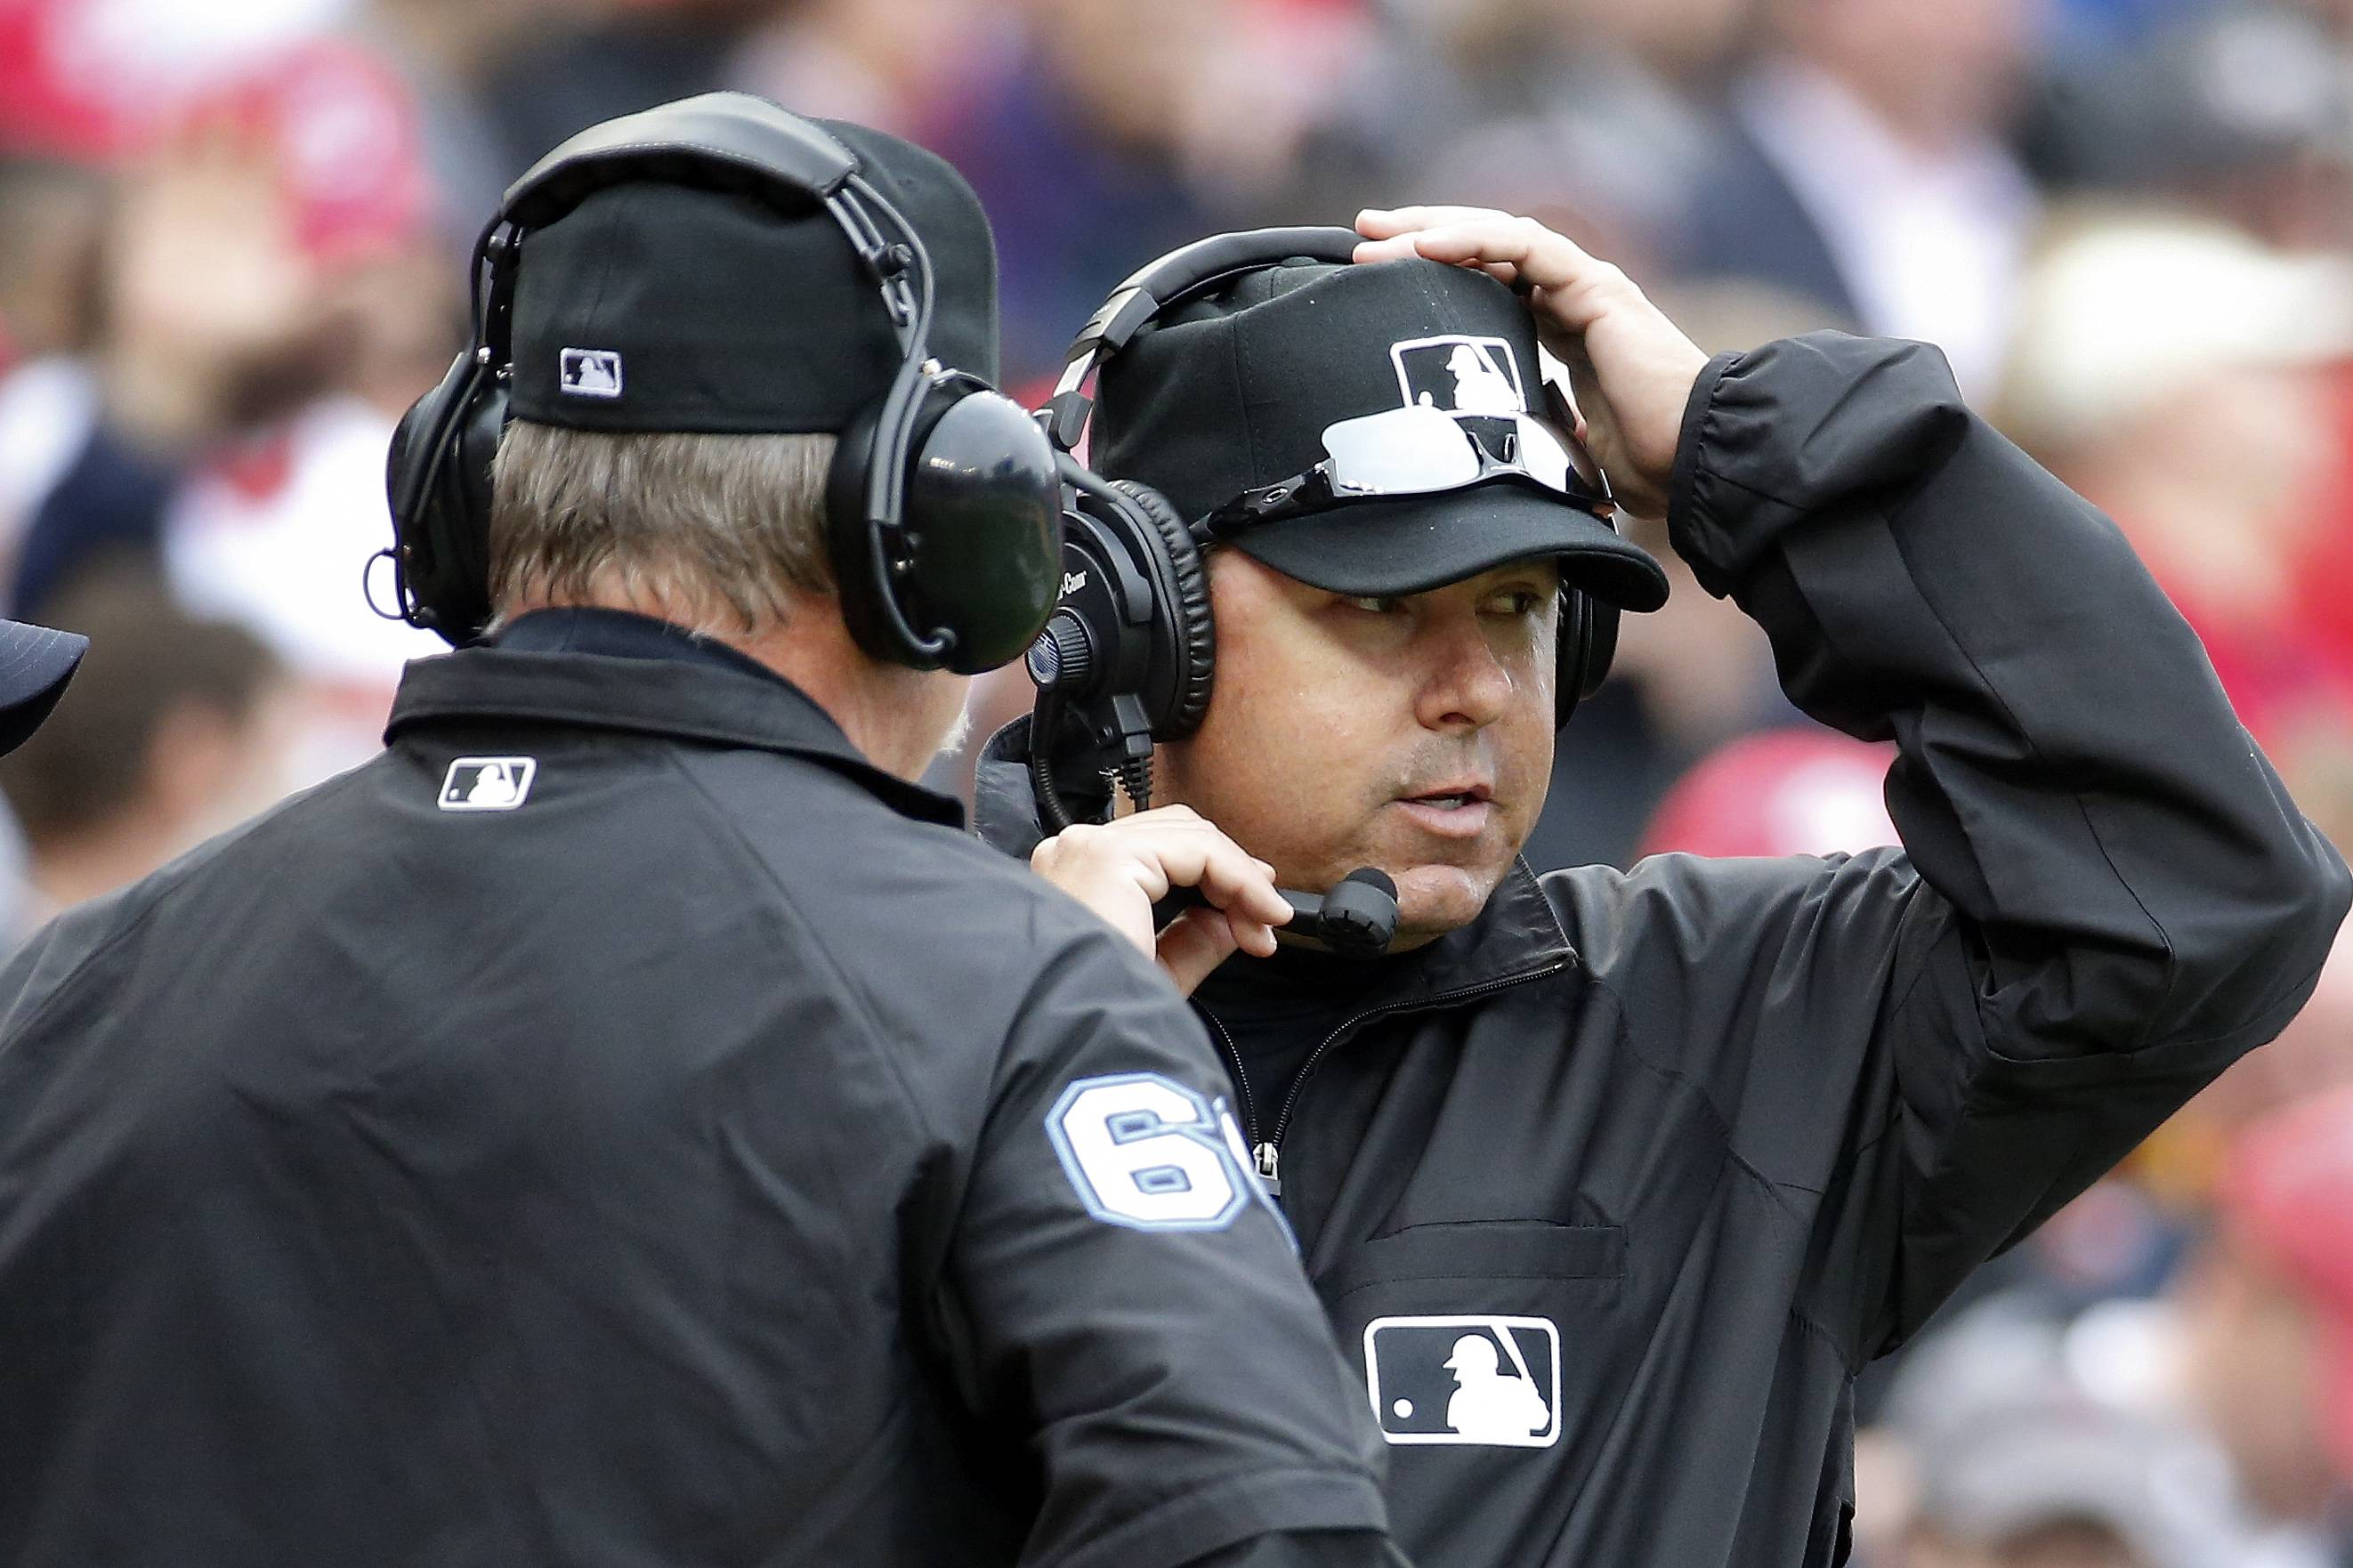 Umpires Jim Joyce, left, and Doug Eddings talk on head phones as they review a call during the fifth inning of a game between the Washington Nationals and Atlanta Braves on Friday. Ian Desmond's inside-the-park homer was overturned on replay review and changed to a ground-rule double.